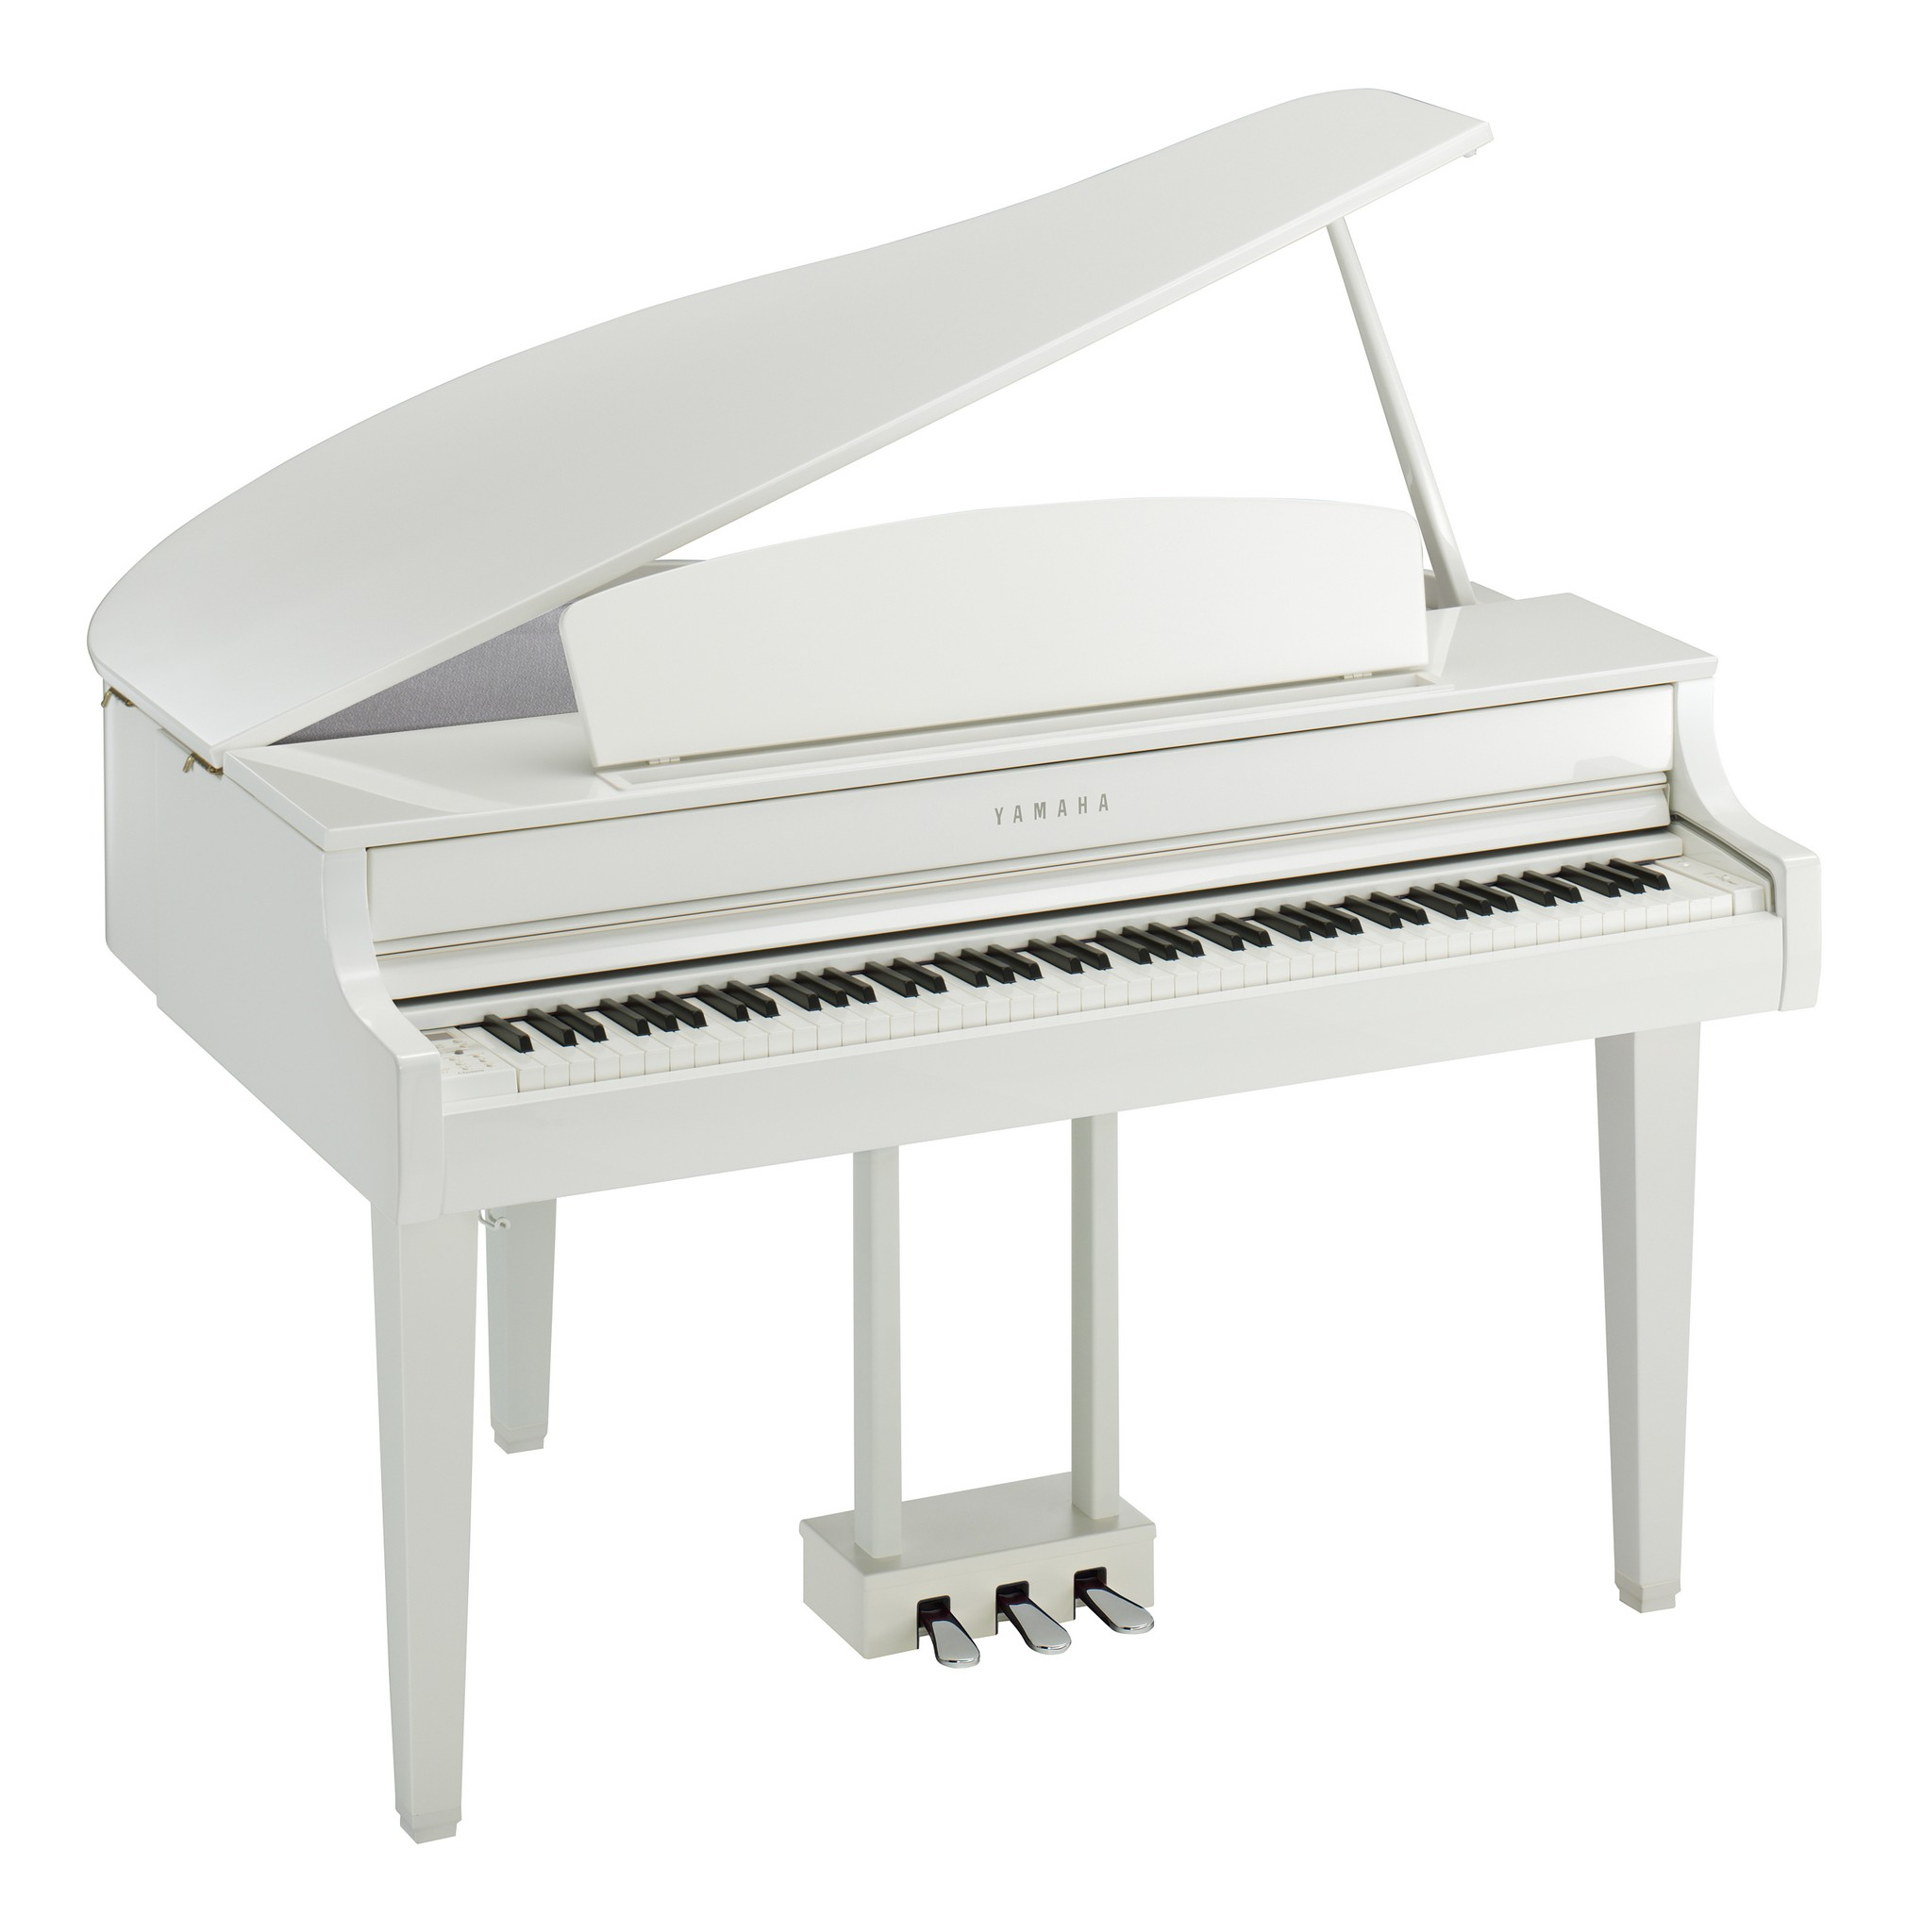 Yamaha Digitalpiano CLP 765 GP WH